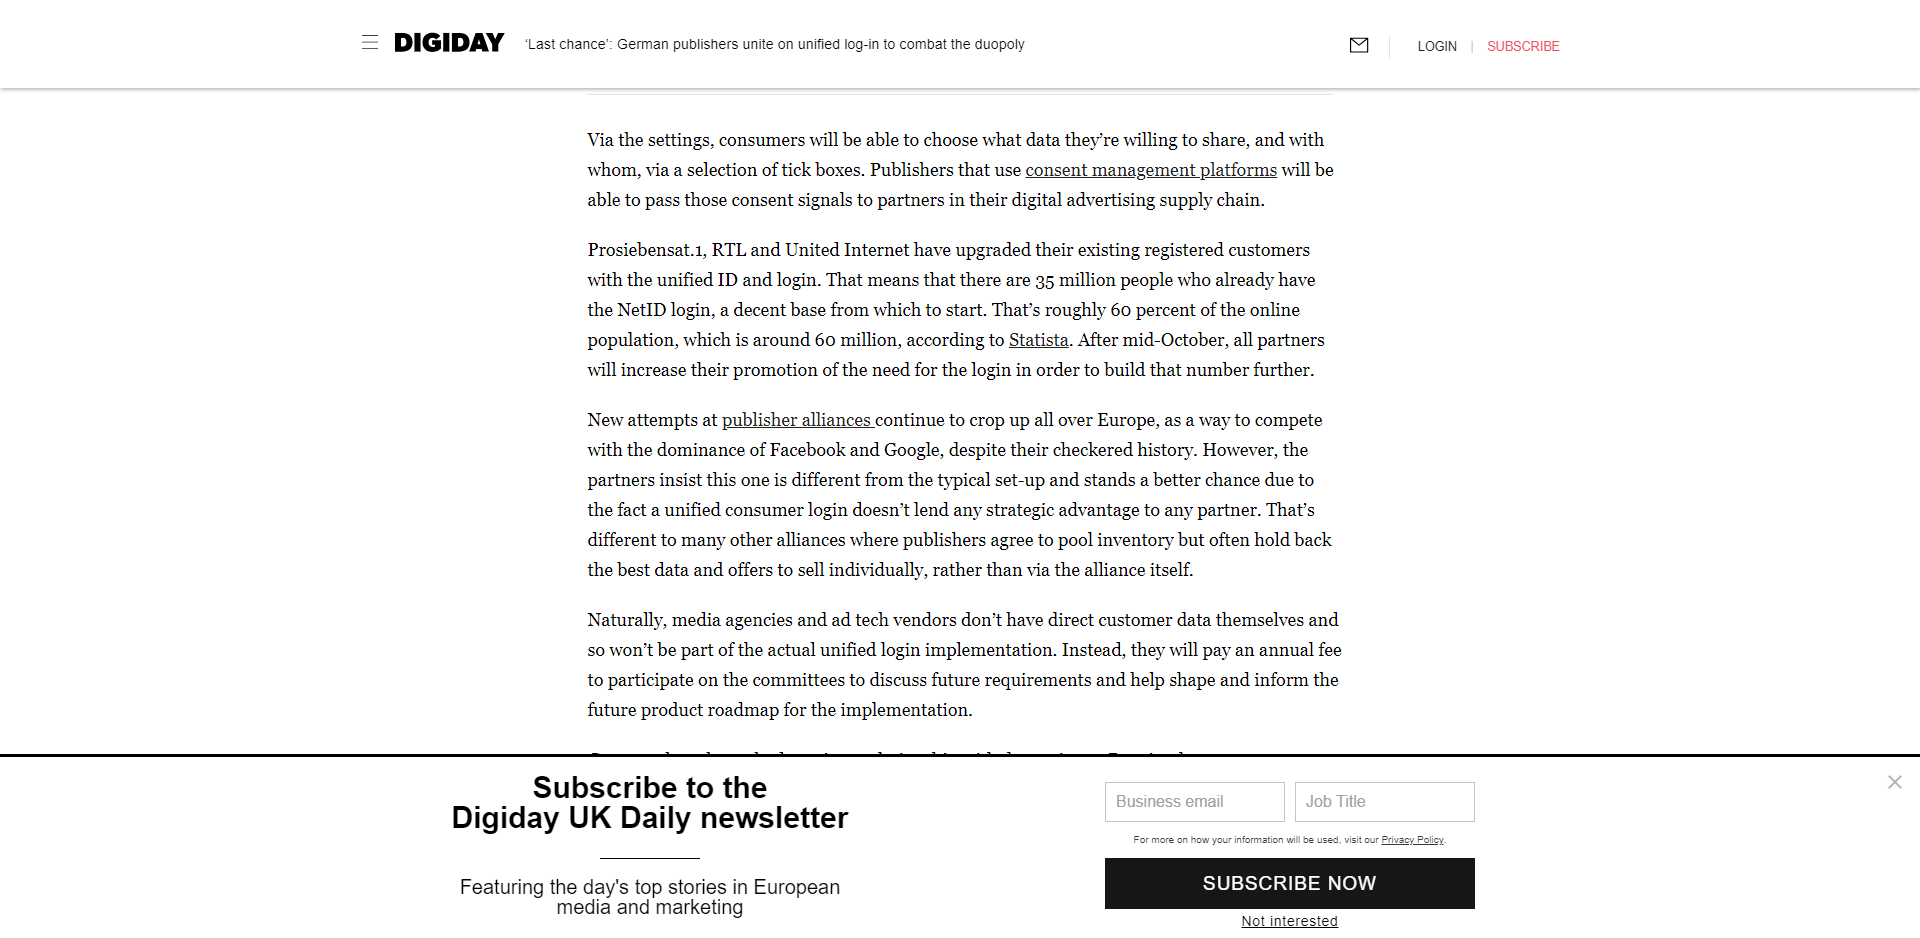 An email bar on Digiday.com